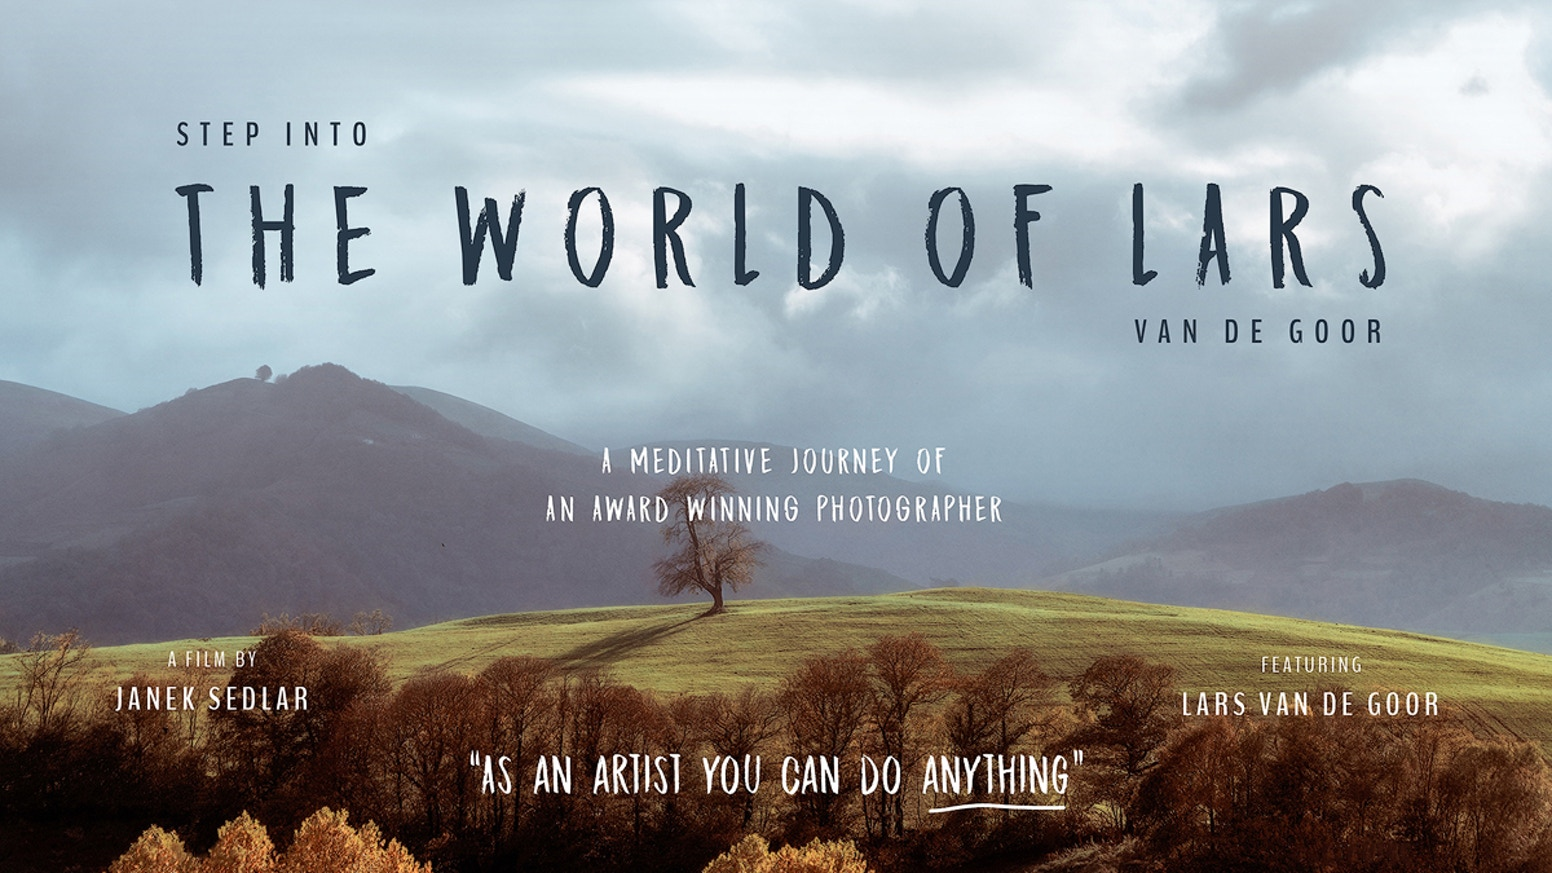 A visual documentary about an award winning photographer living in a camper van and traveling the world.